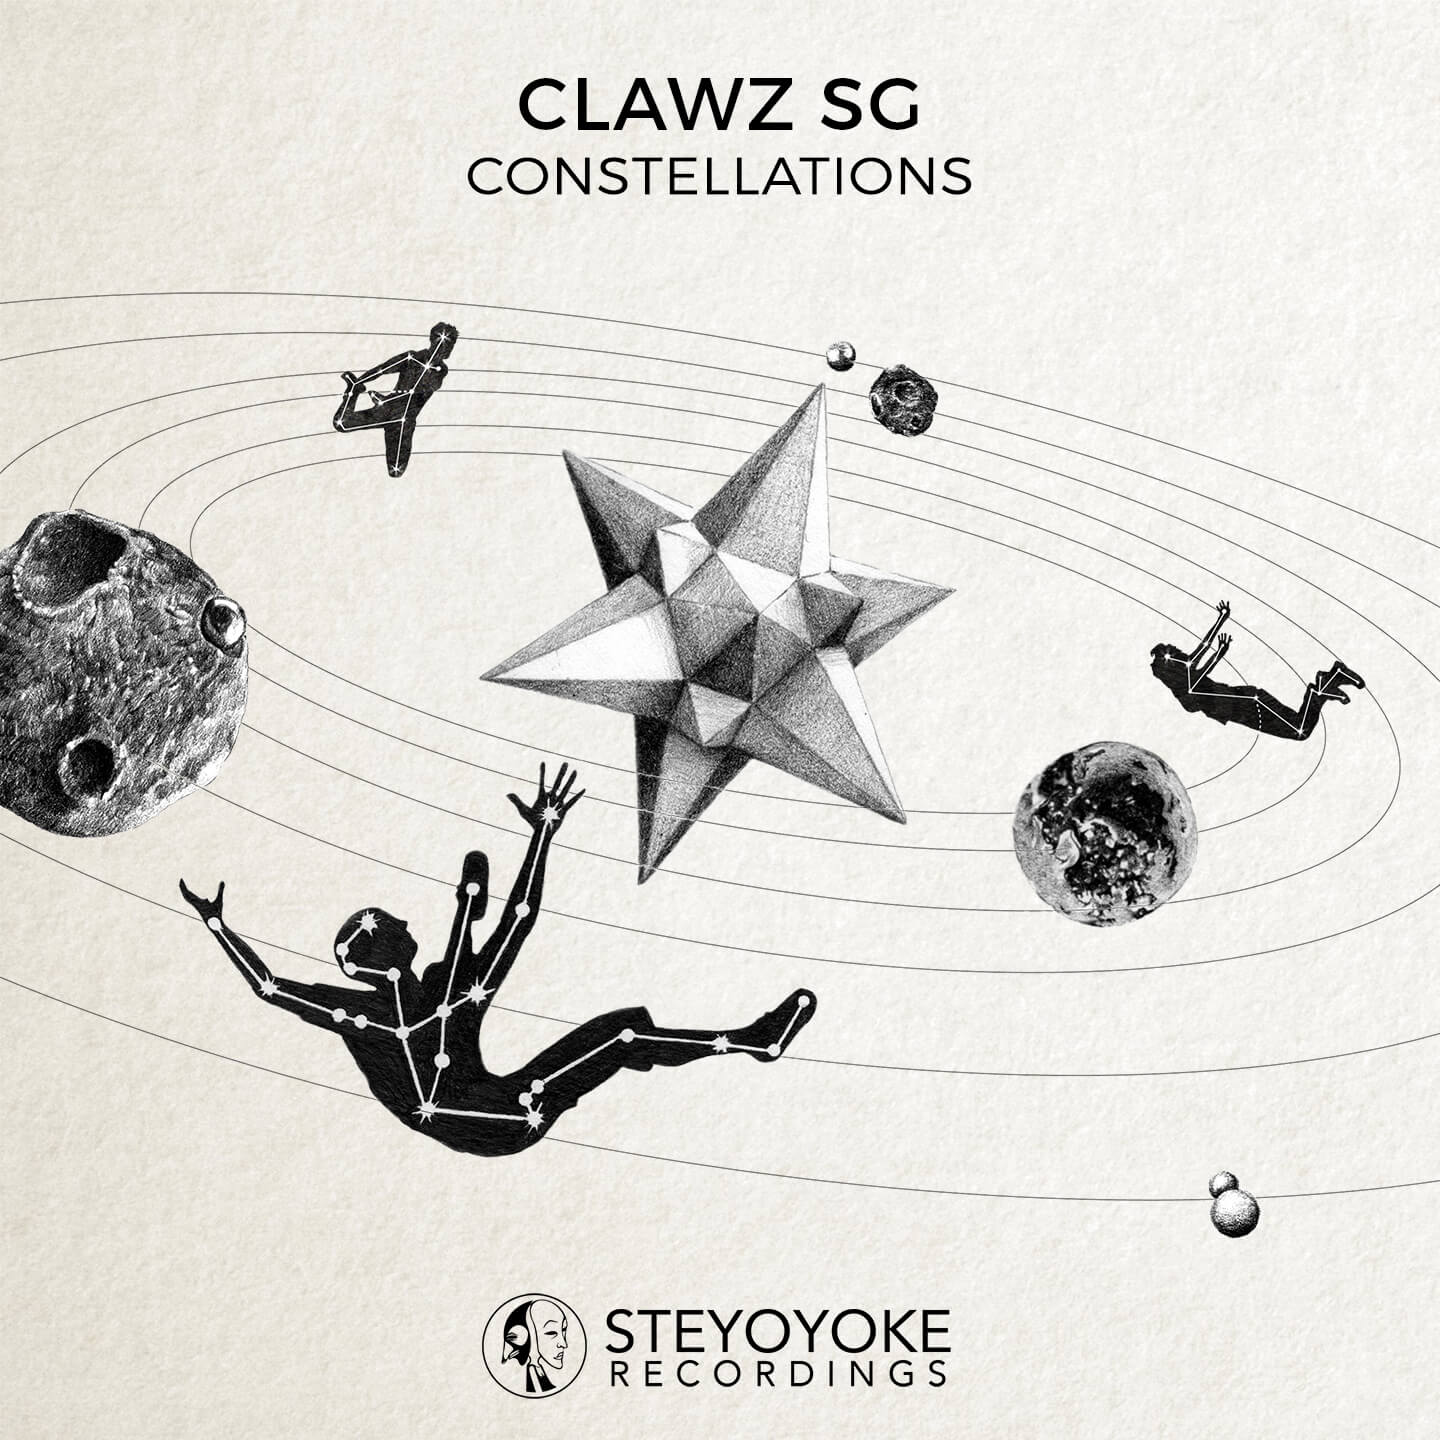 SYYK066 - Steyoyoke Clawz SG Constellations